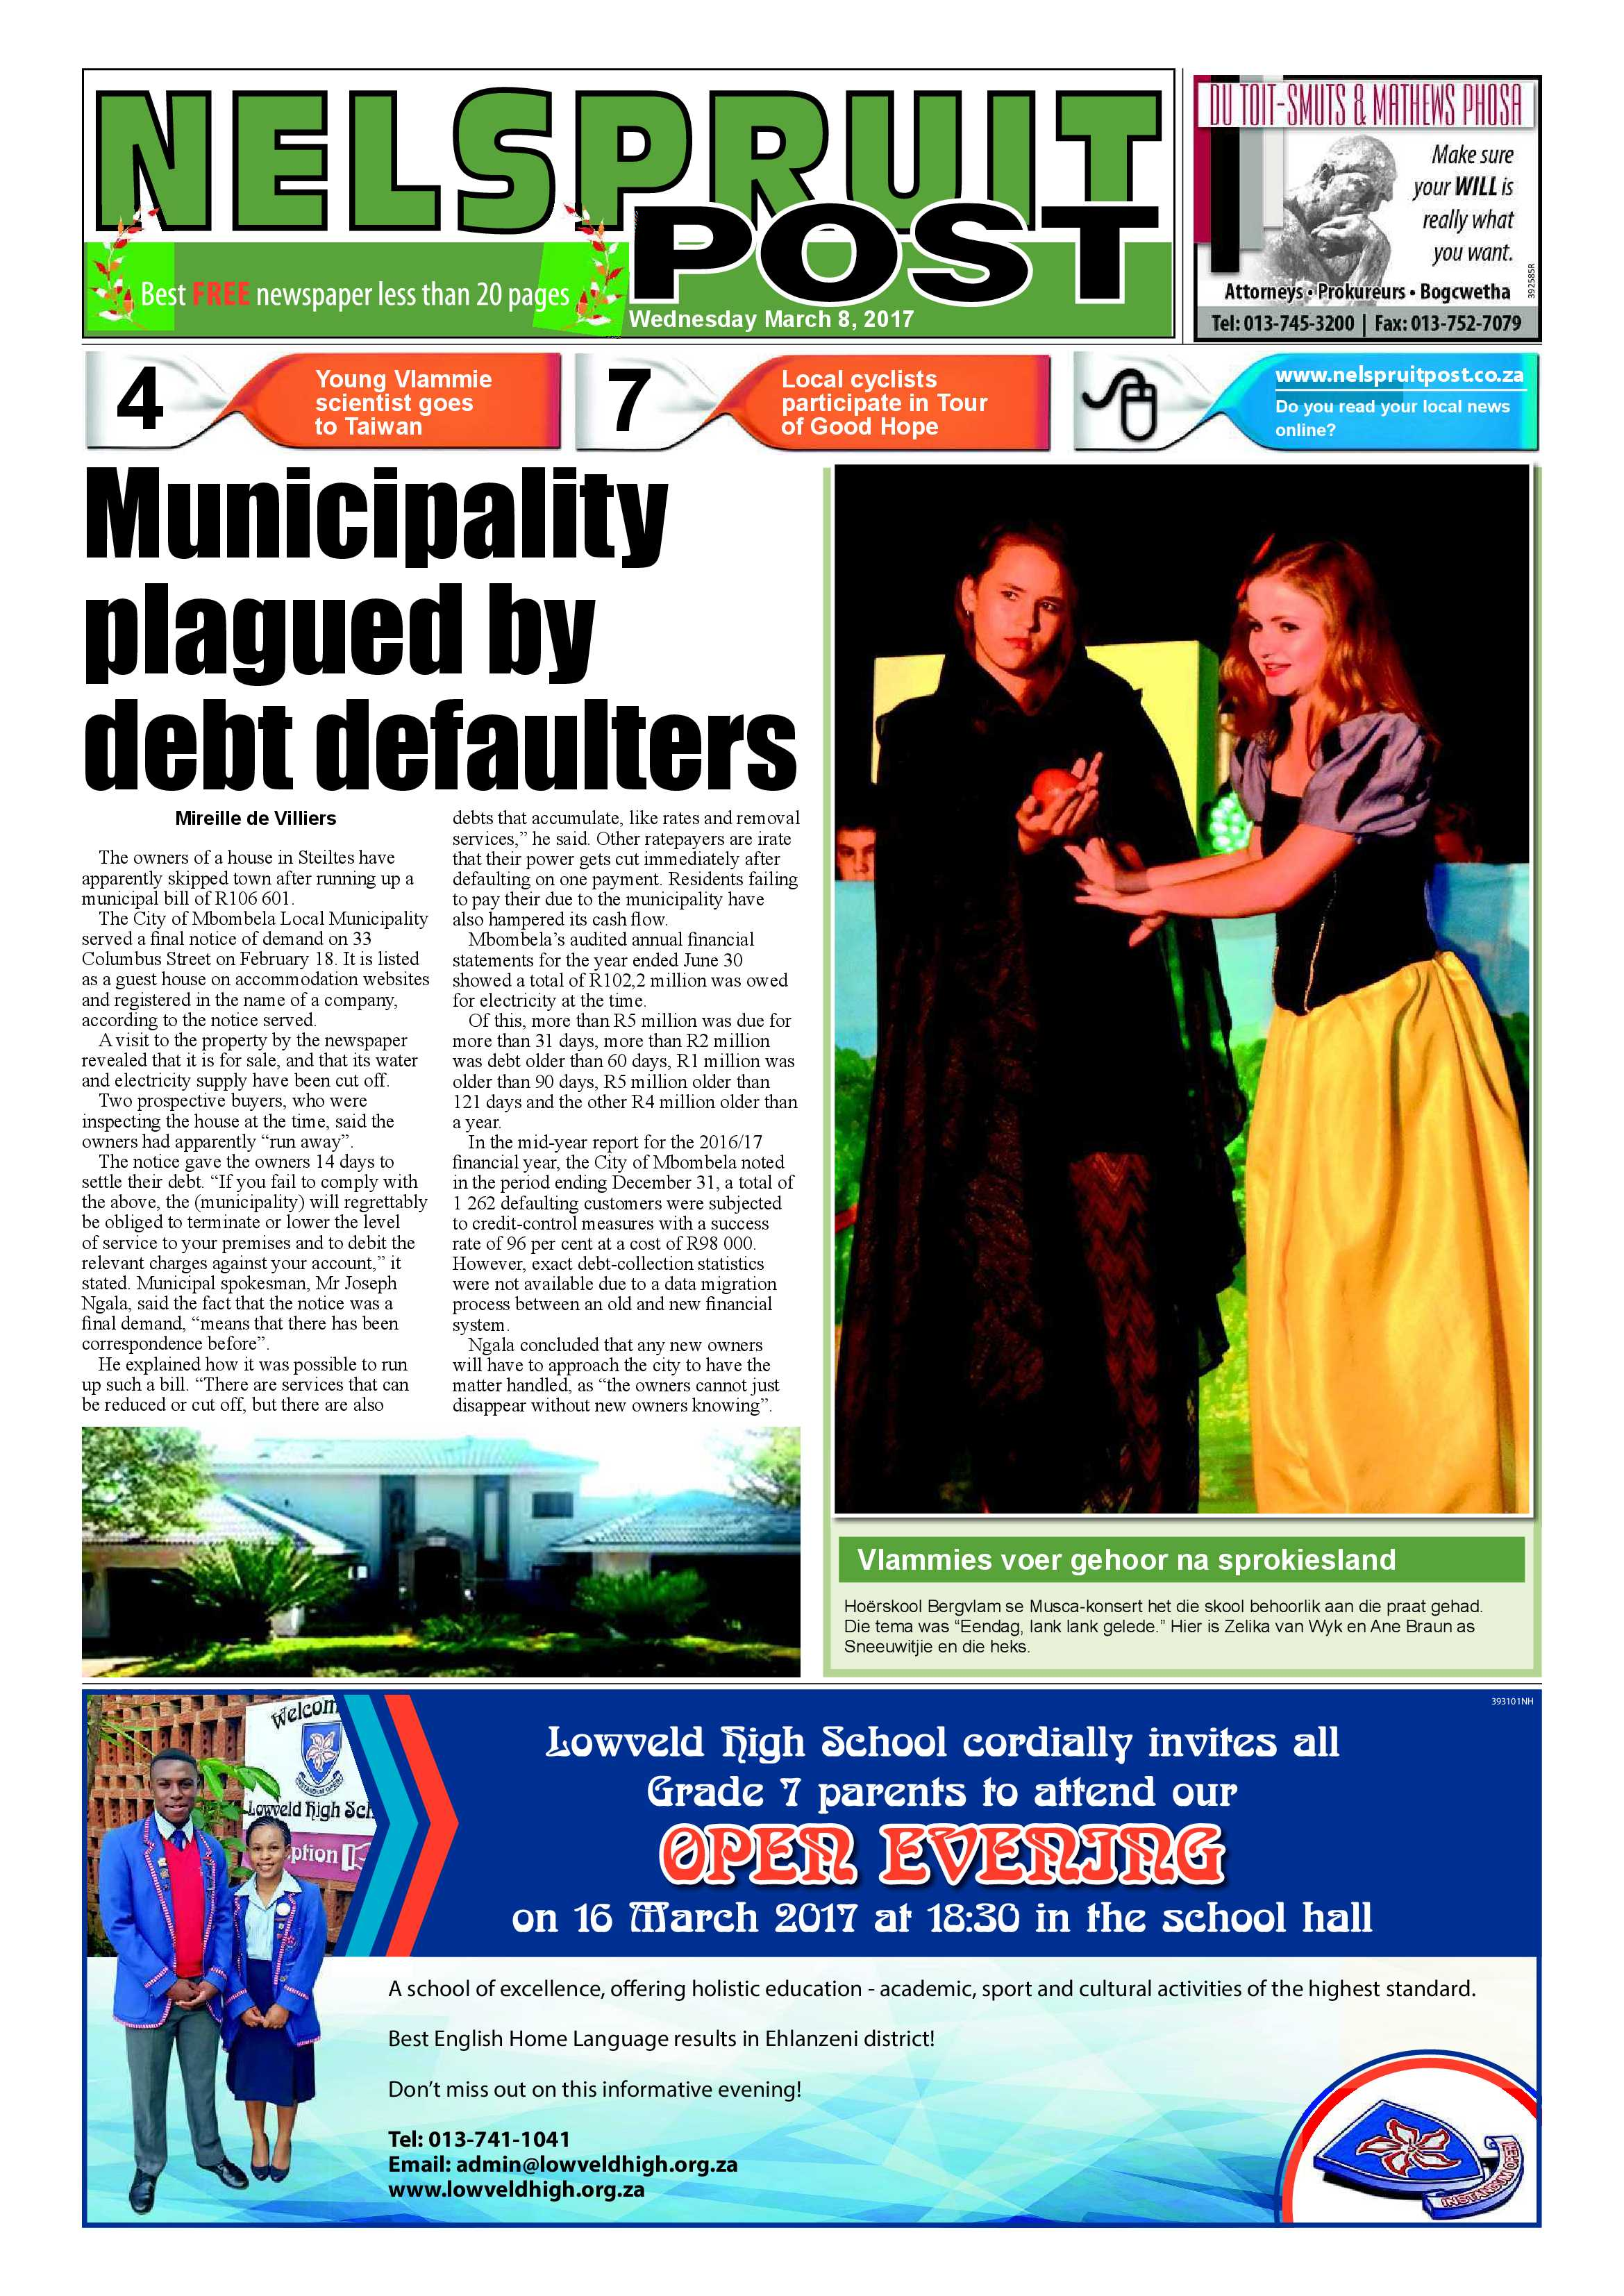 Posts for march page 7 - Nelspruit Post 8 March 2017 Epapers Page 1